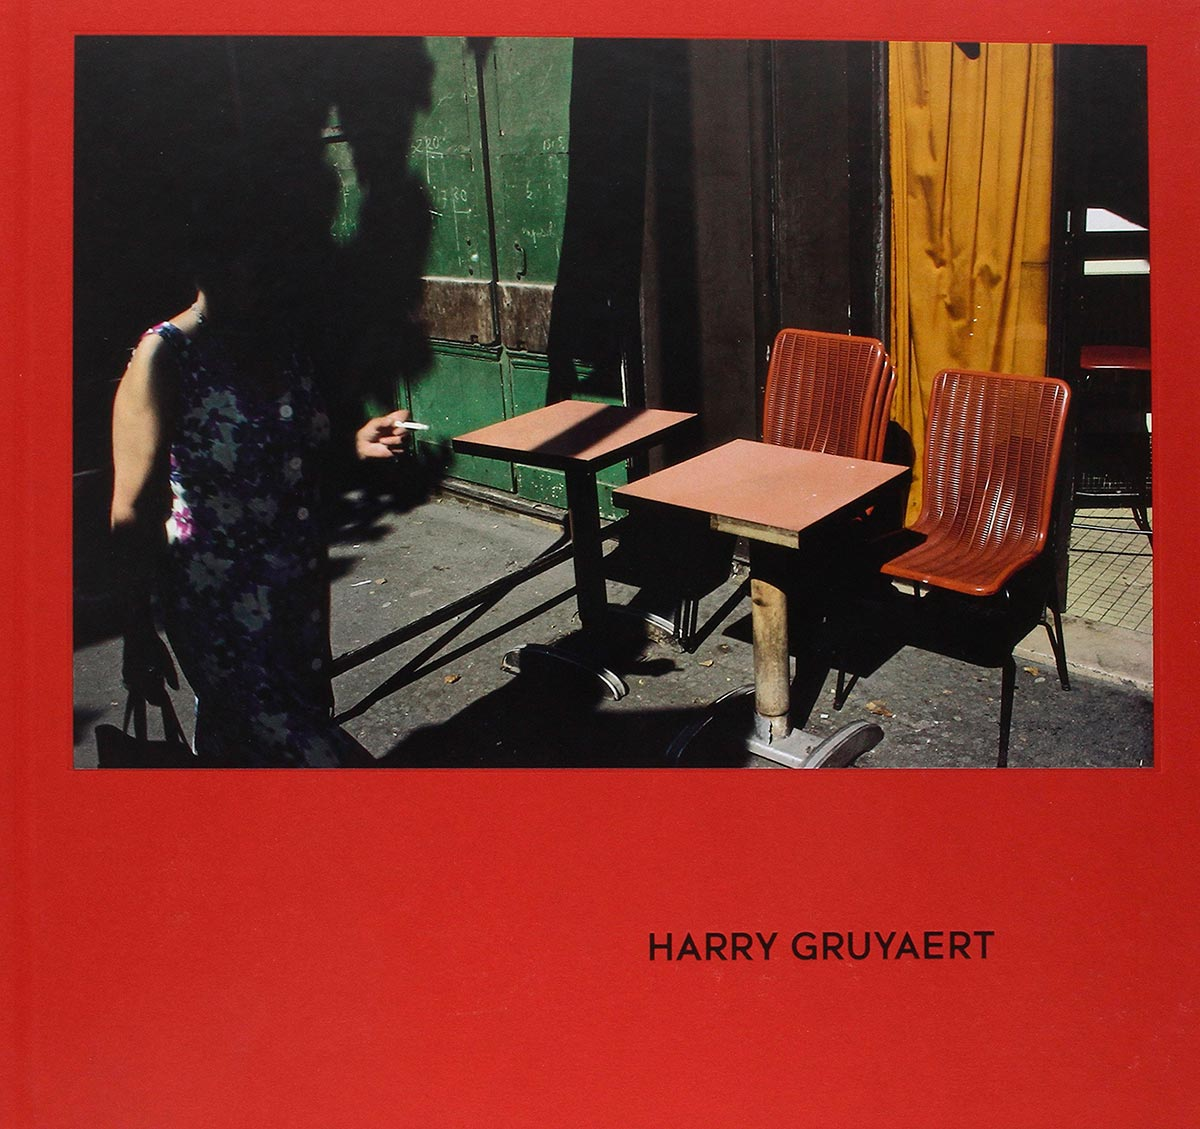 Harry Grayaert